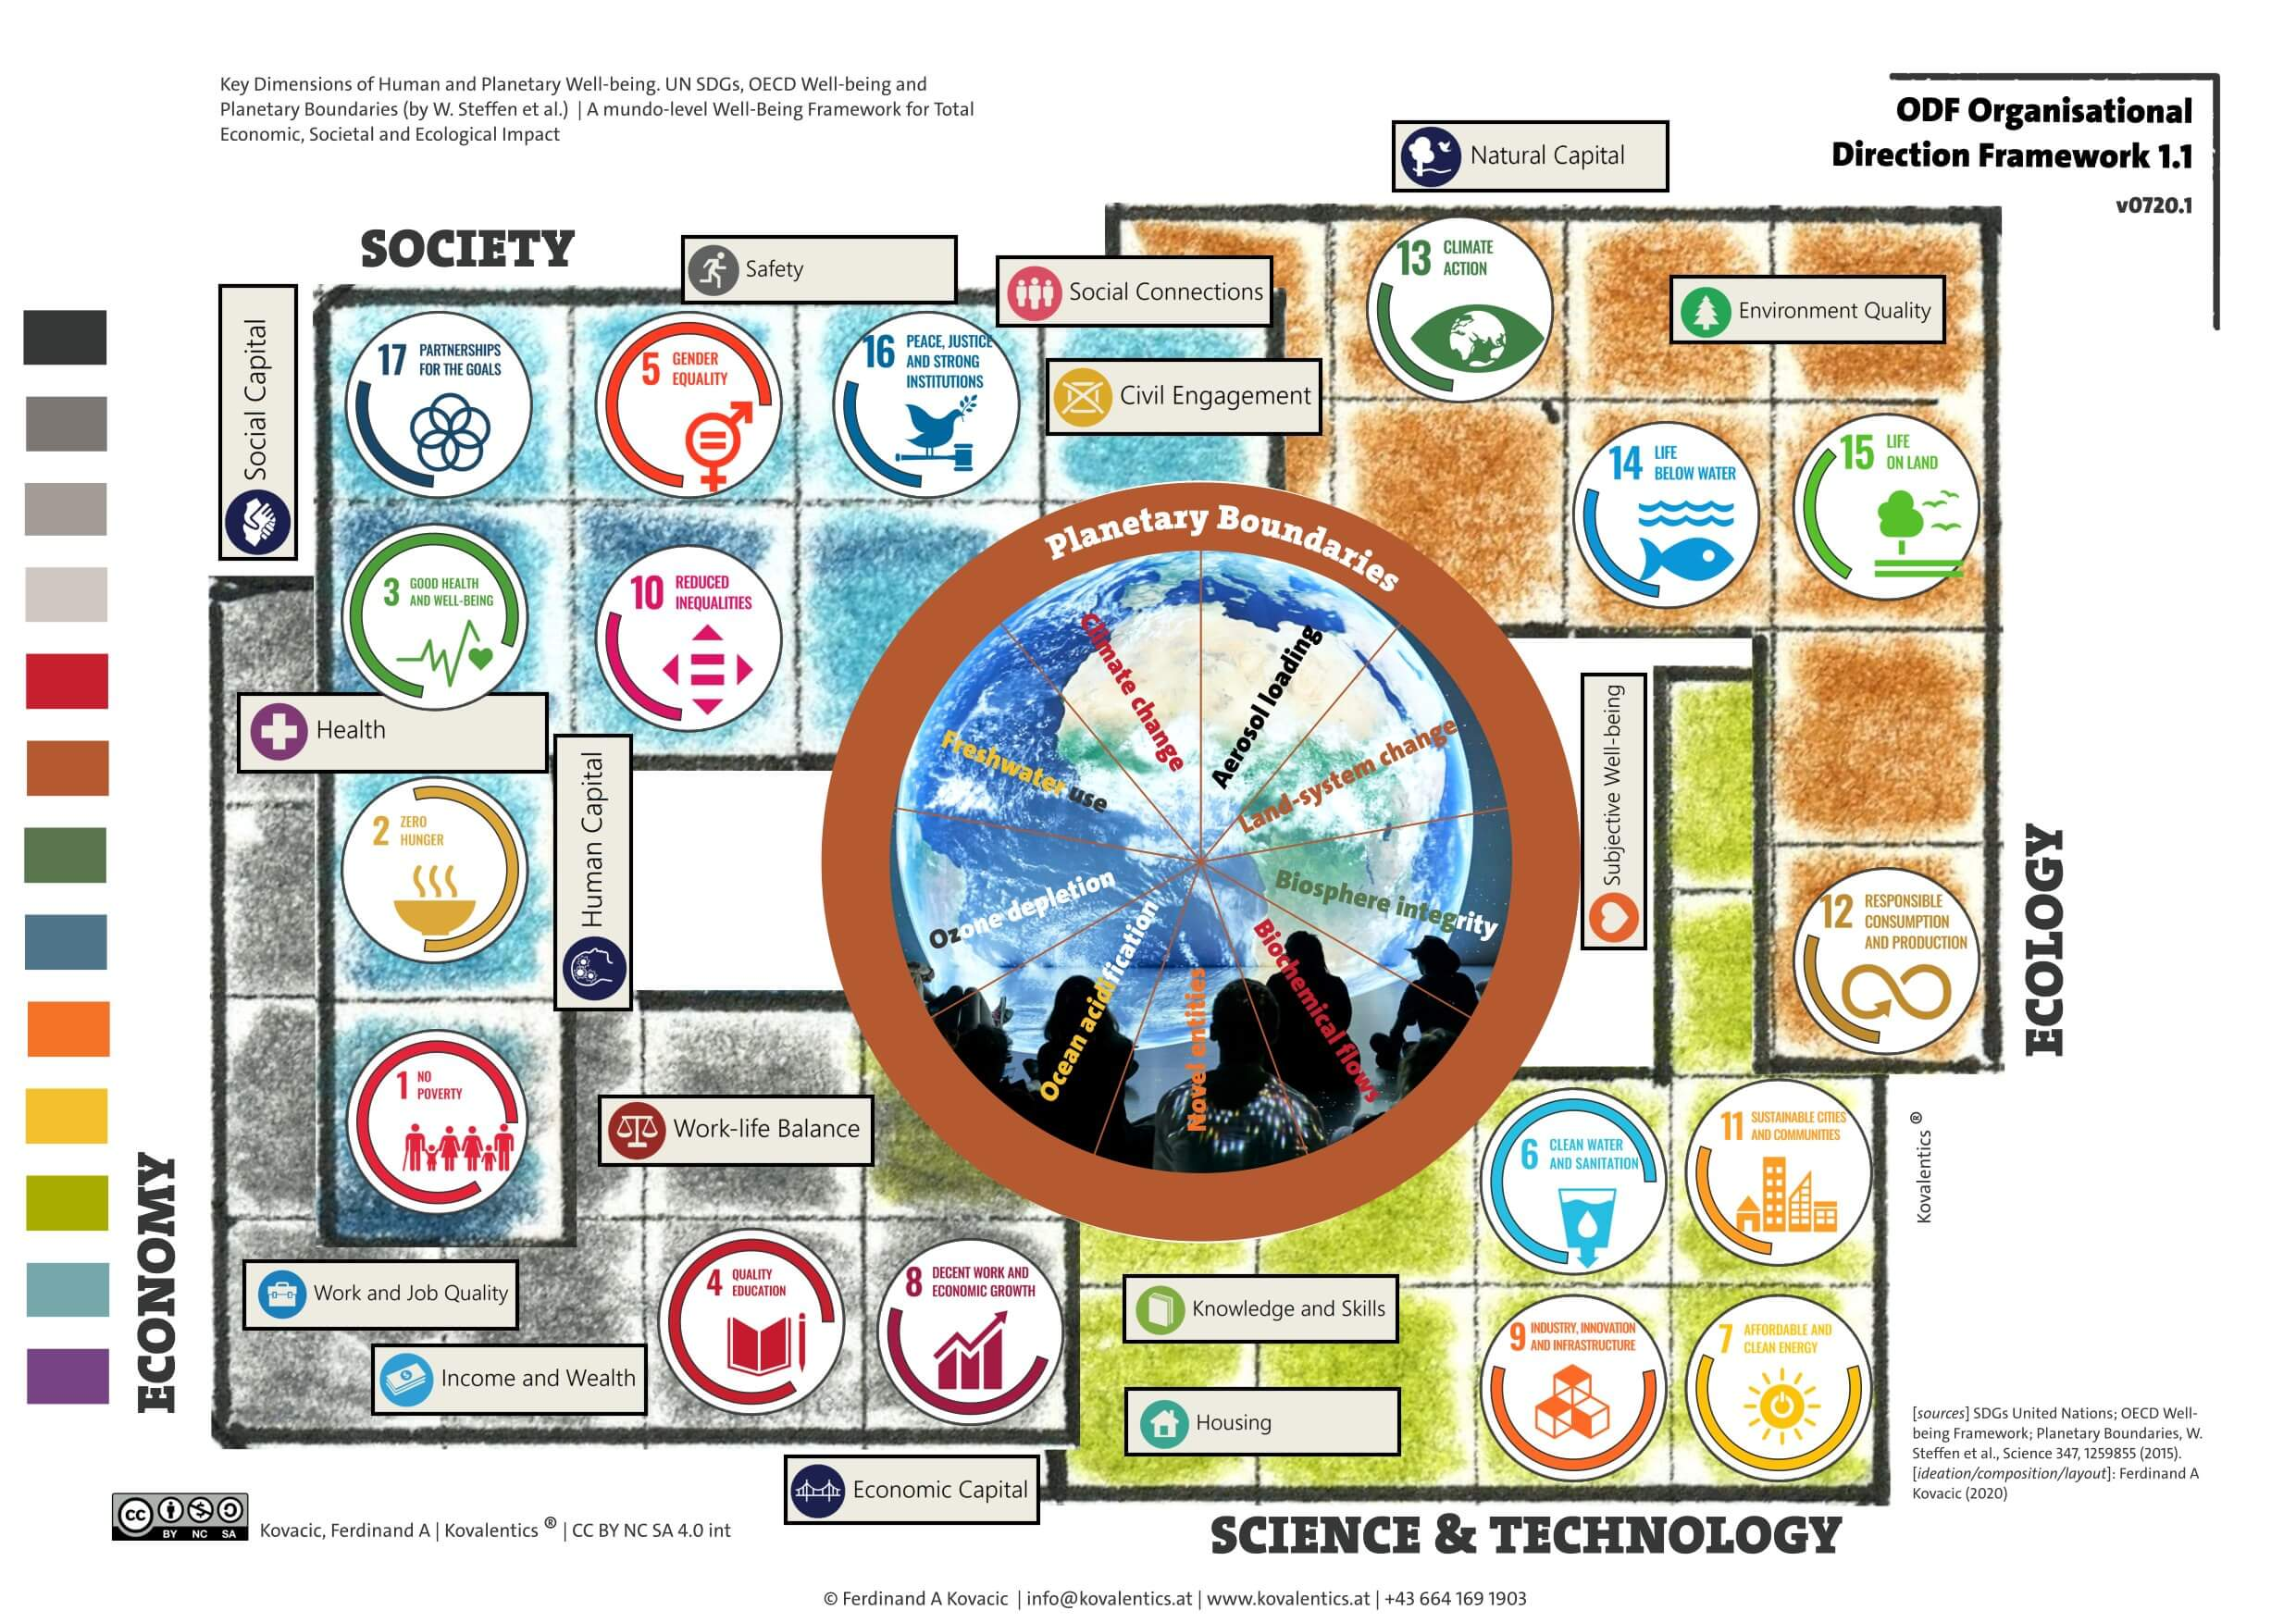 Key Dimensions Of Human And Planetary Well-being. UN SDGs, OECD Well-being And Planetary Boundaries (by W.Steffen Et Al.). A Mundo-level Well-Being Framework For Total Economic, Societal And Ecological Impact